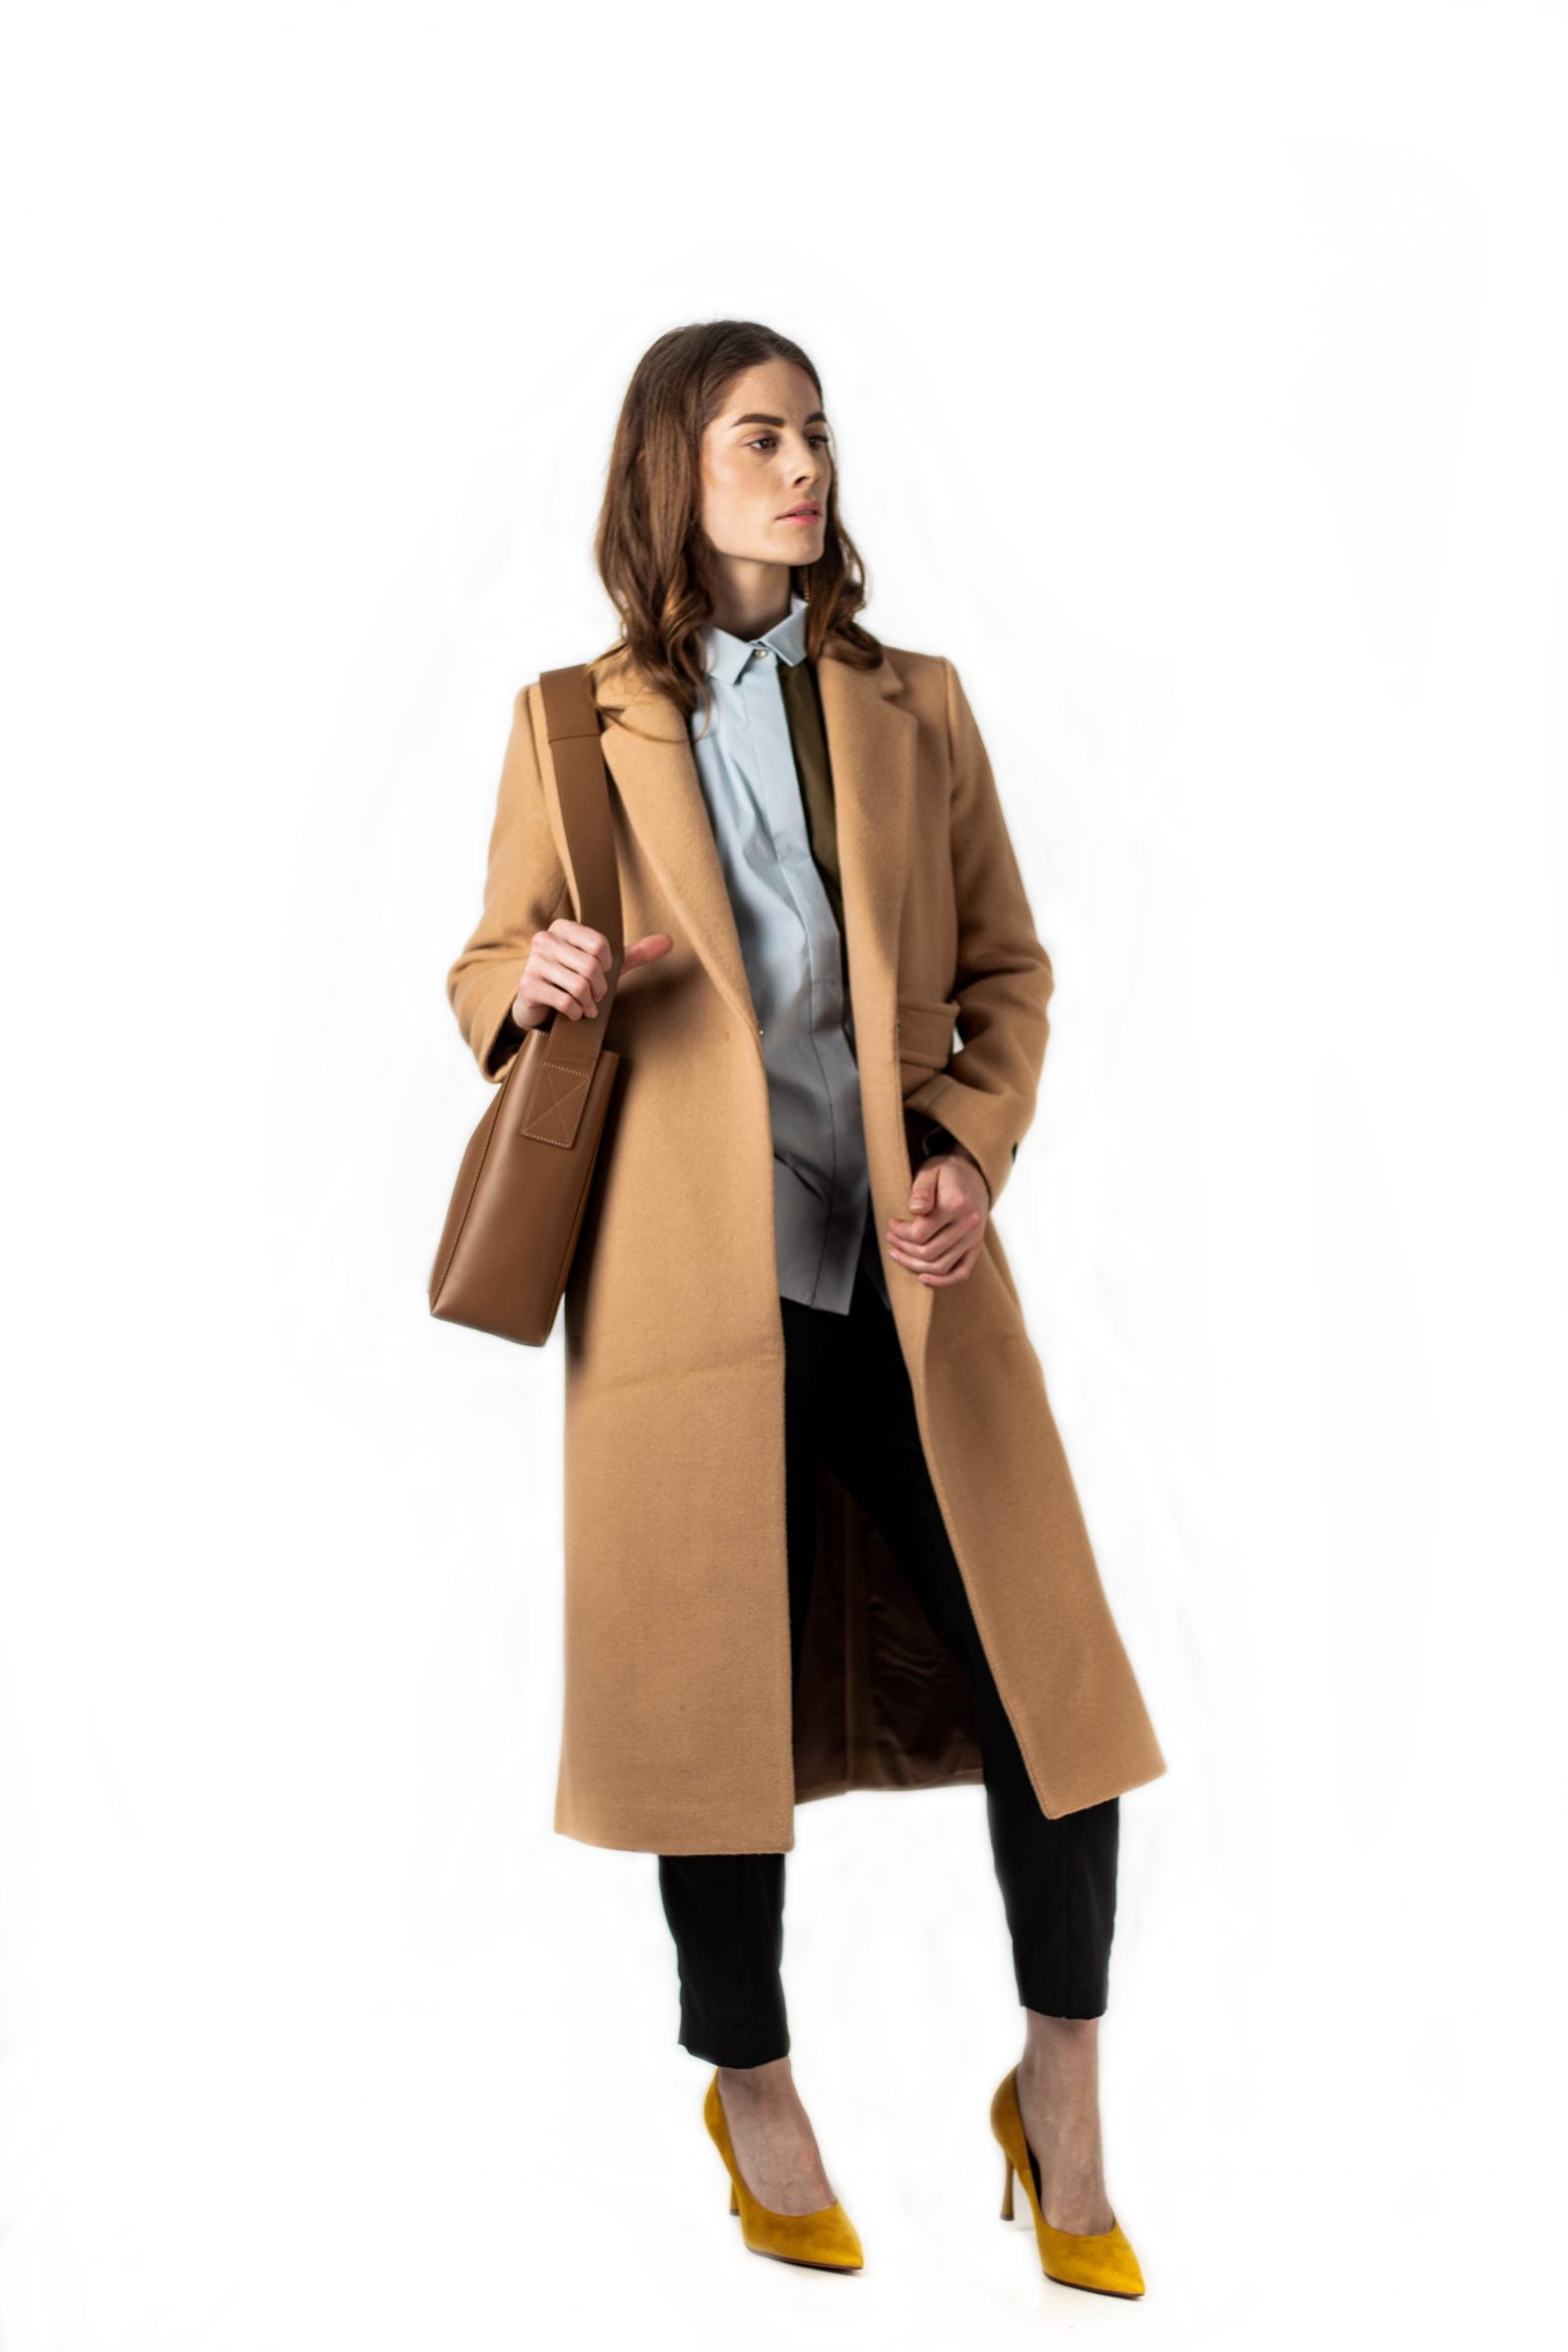 Manteau long -1-2-manteau-long-laine-affaires-etrangeres-paris-mode-coreenne-lookast